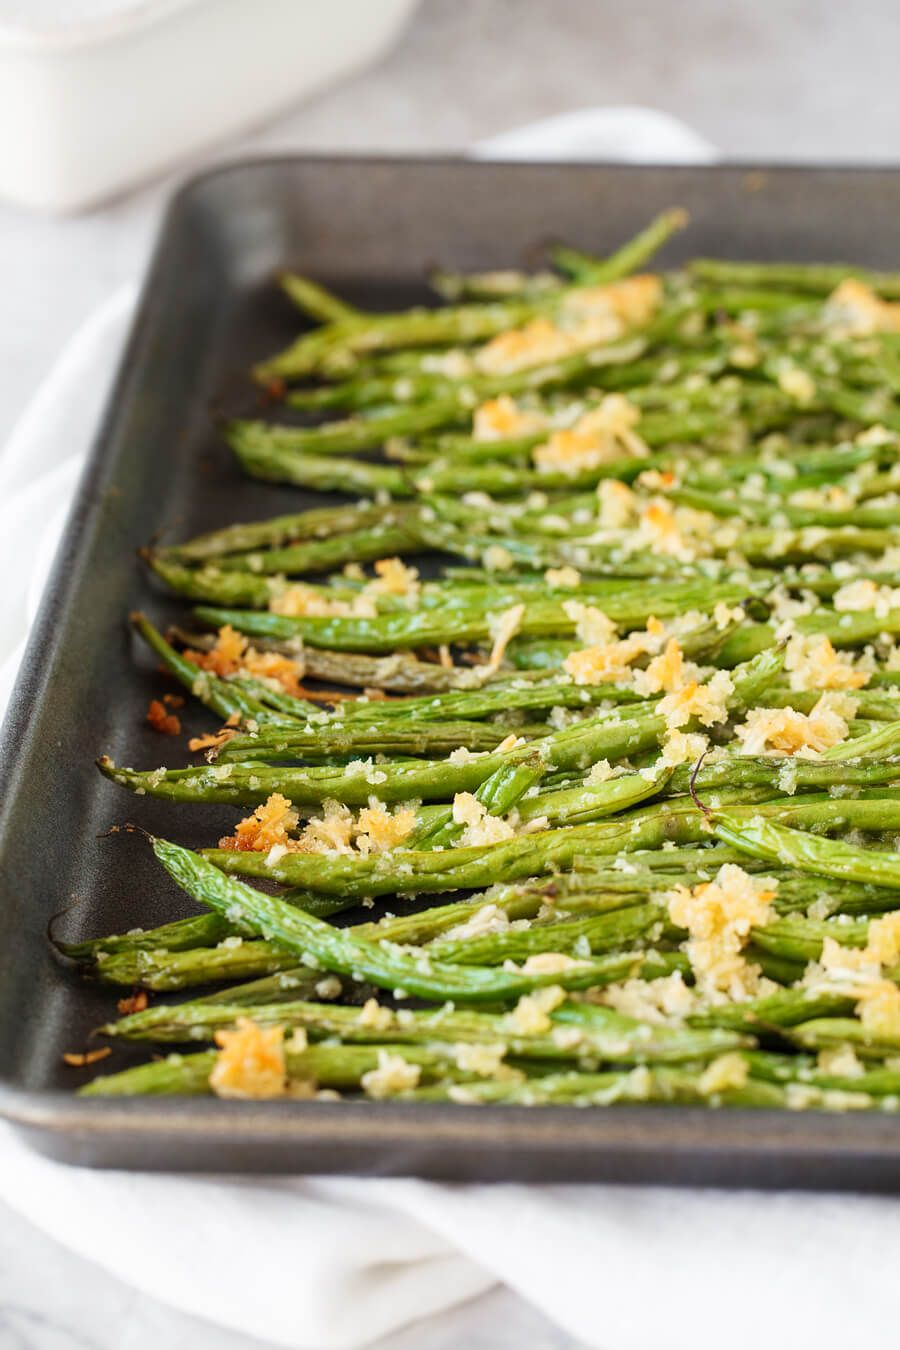 Roasted Veggies: Healthy And Easy To Make